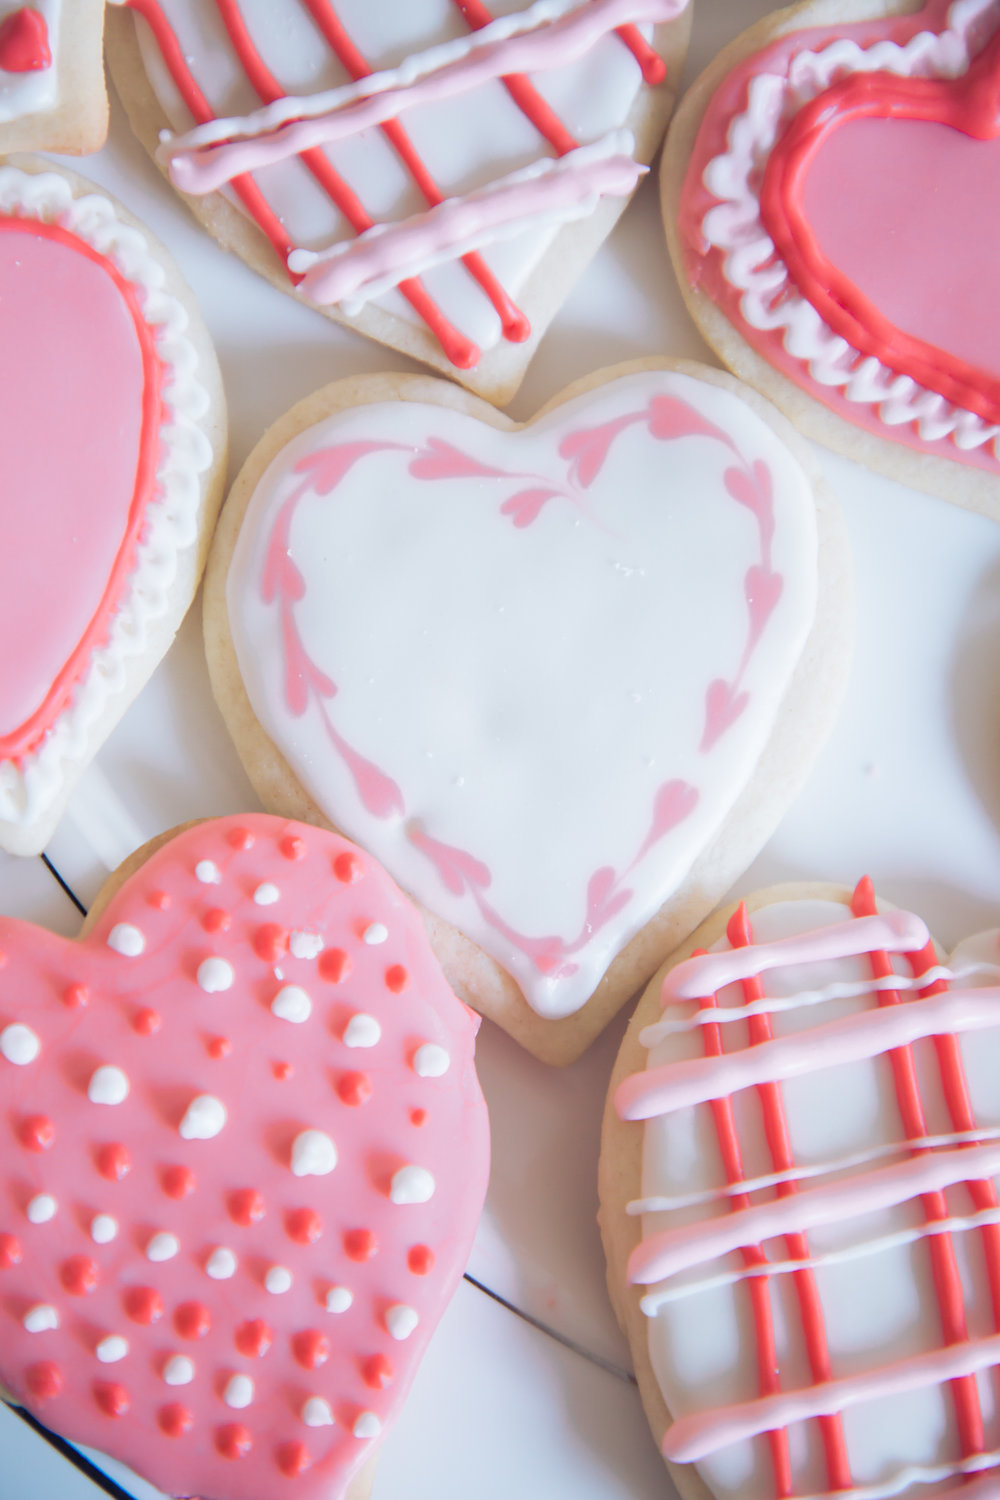 royal icing cookies by victoria smyrniotis-5.jpg